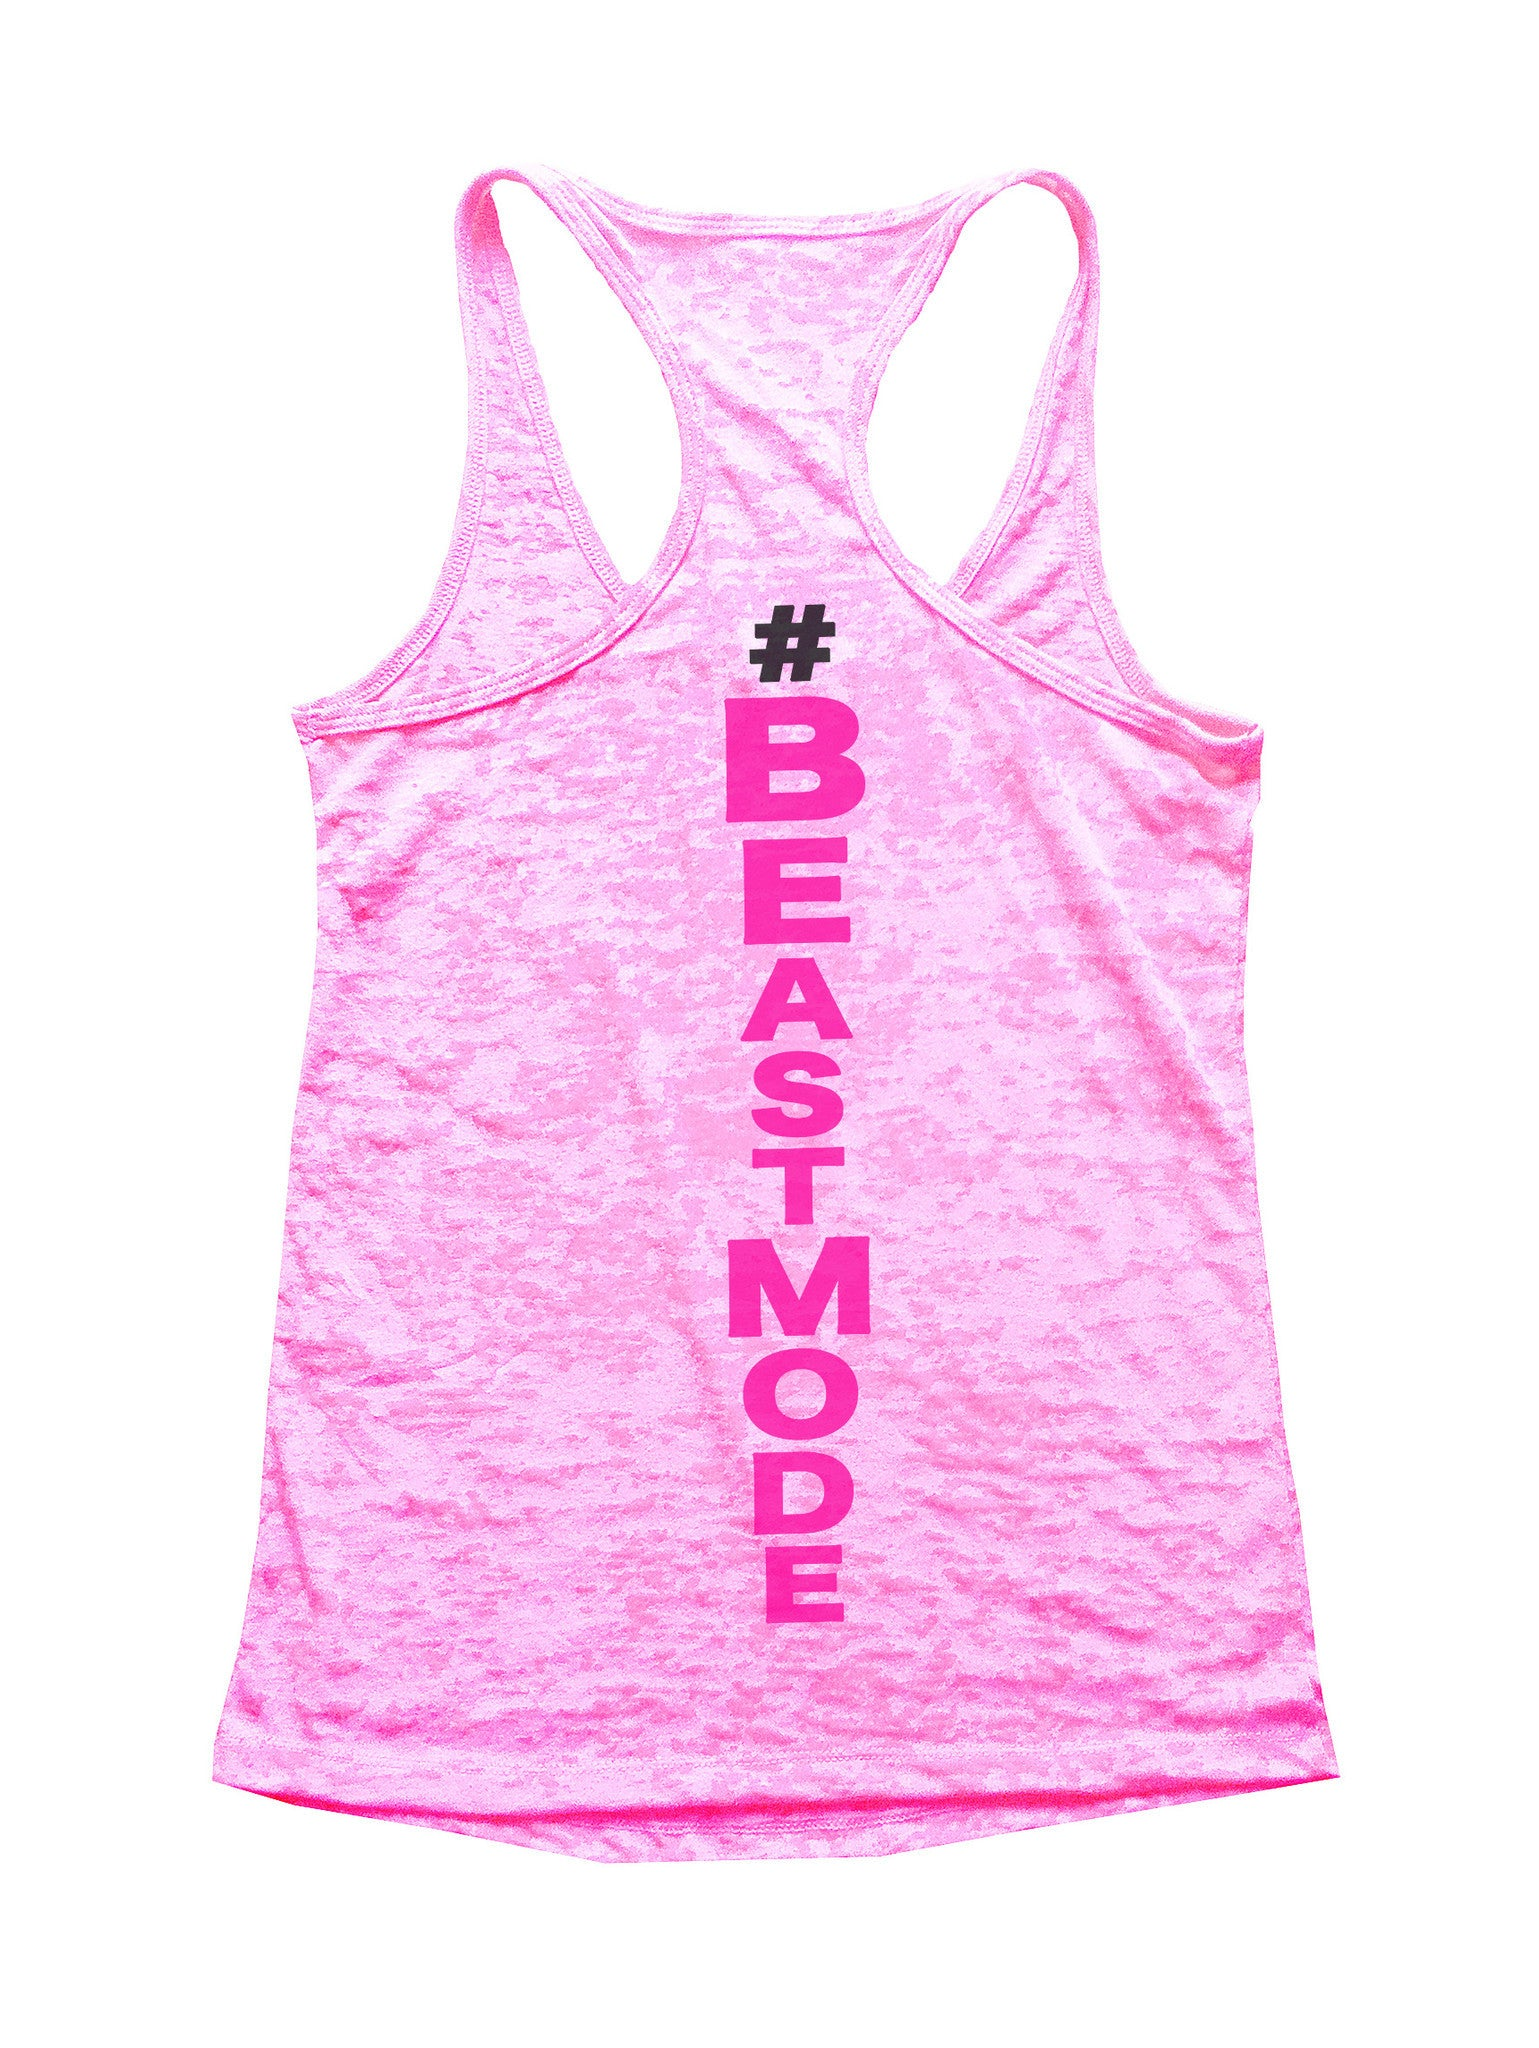 Beast Mode Burnout Tank Top By BurnoutTankTops.com - 526 - Funny Shirts Tank Tops Burnouts and Triblends  - 2